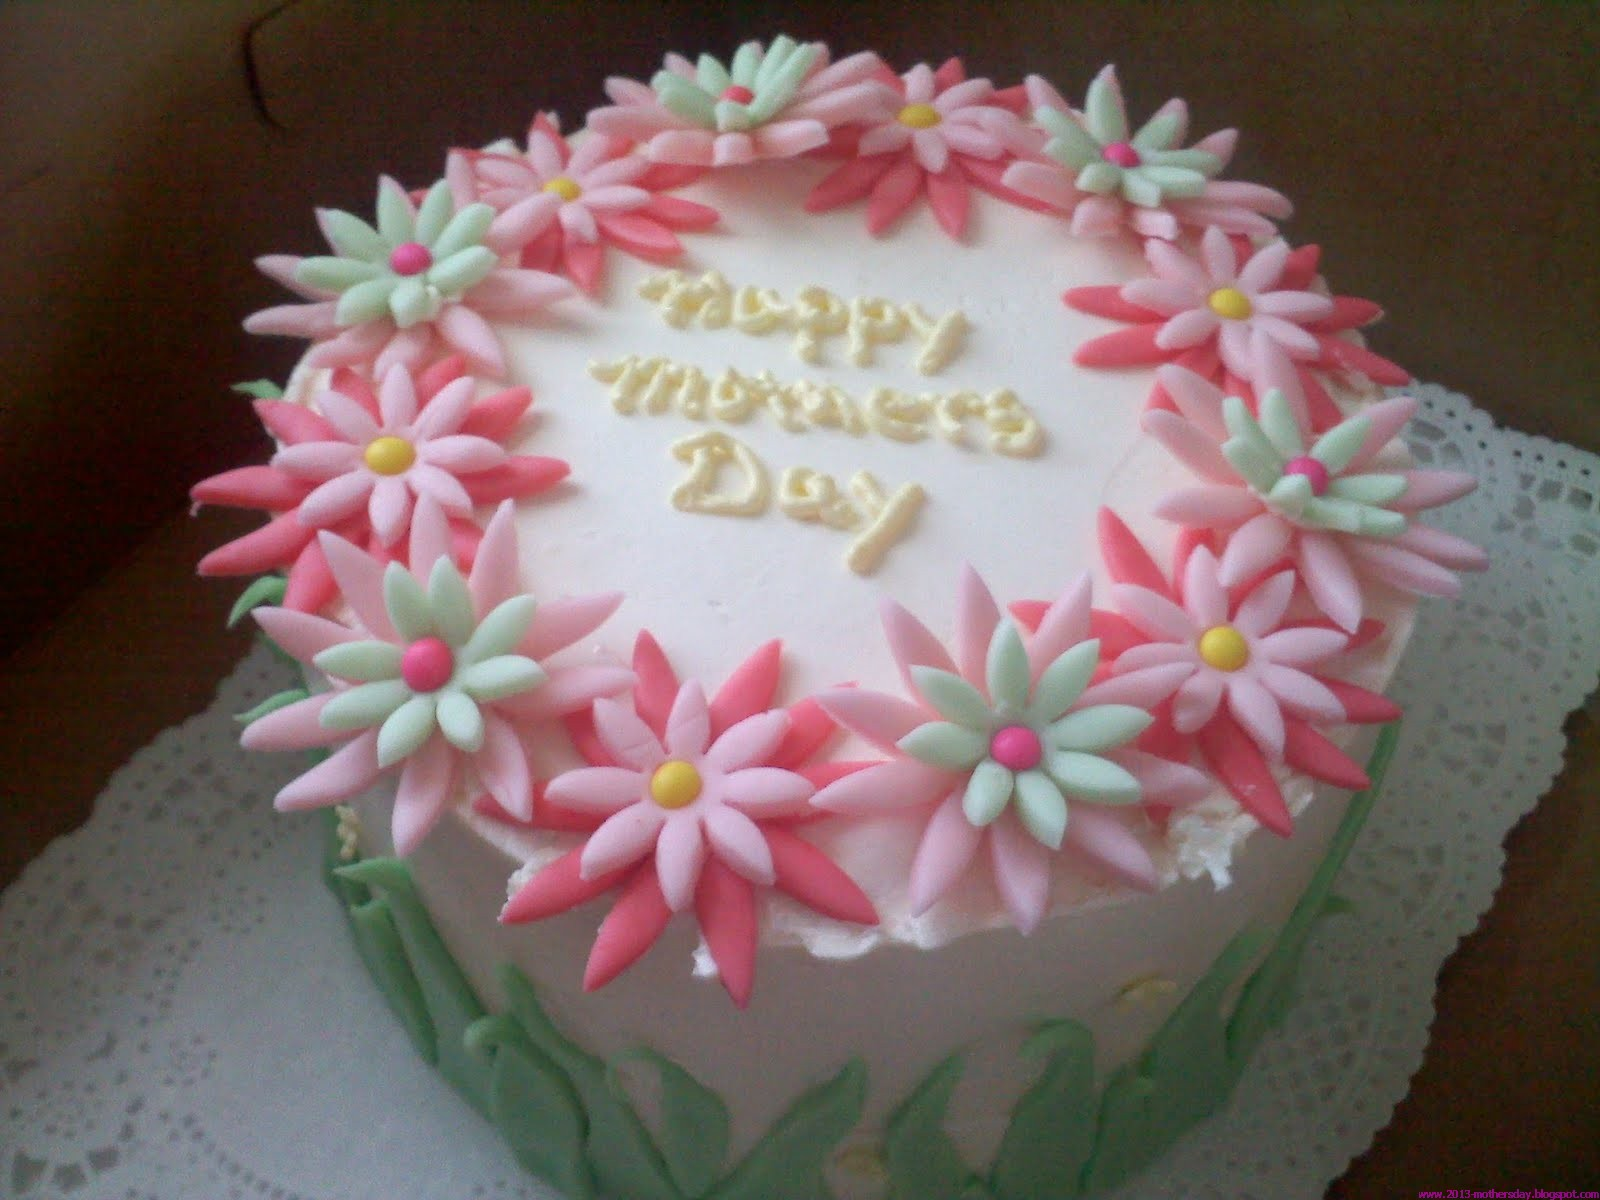 Cake Design For Mothers : Wallpaper Free Download: Mothers day cake Decoration And ...